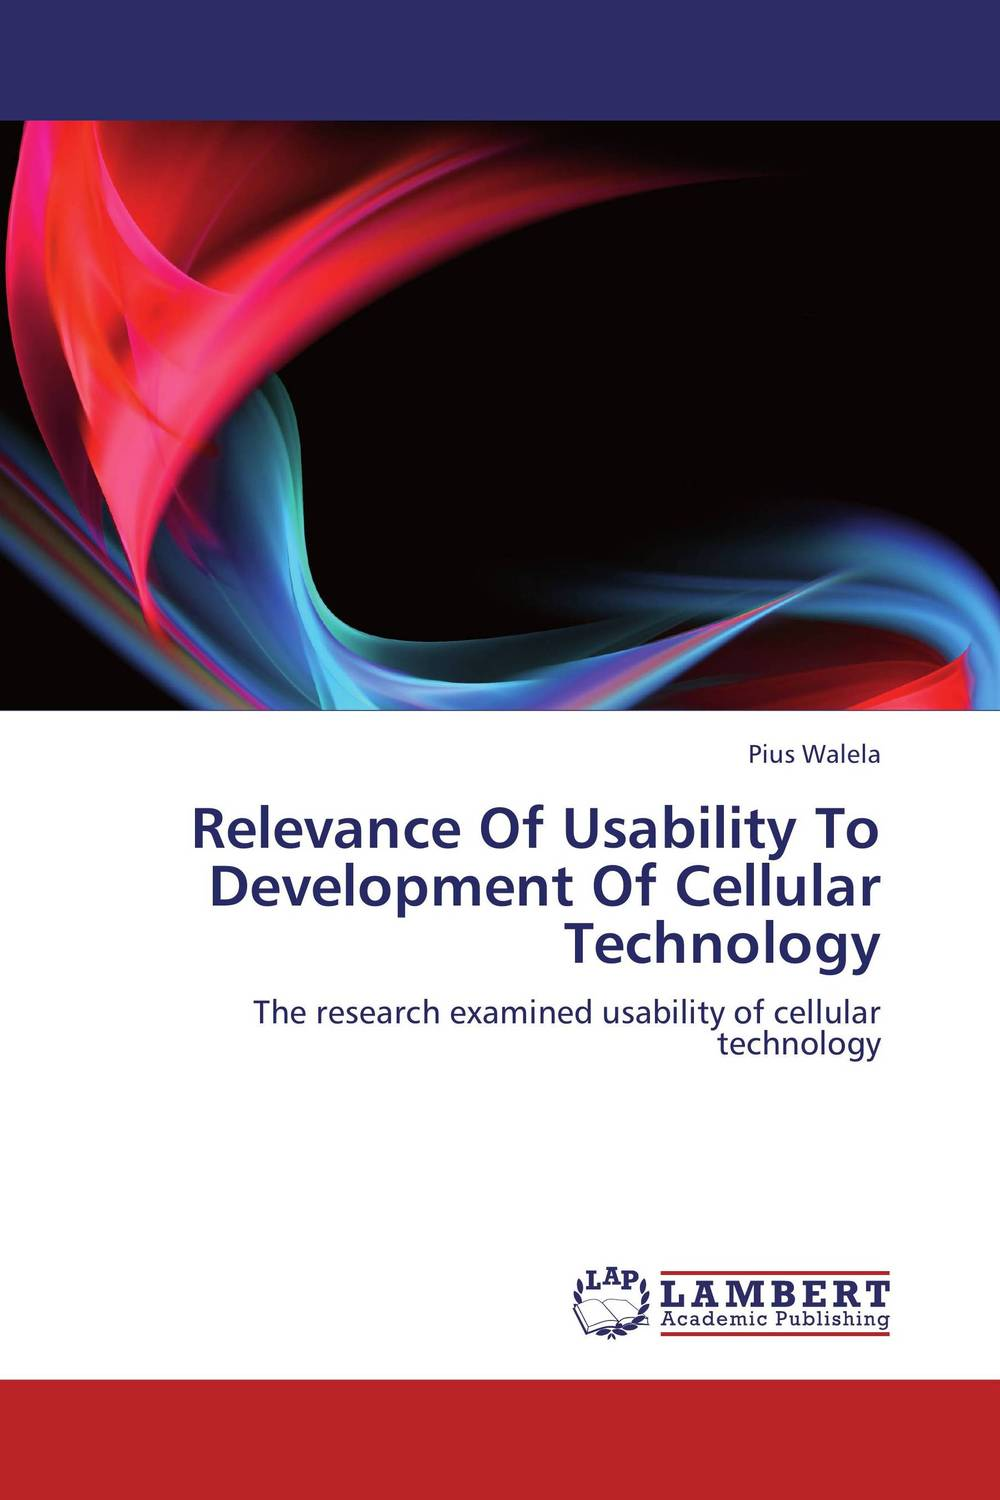 Relevance Of Usability To Development Of Cellular Technology